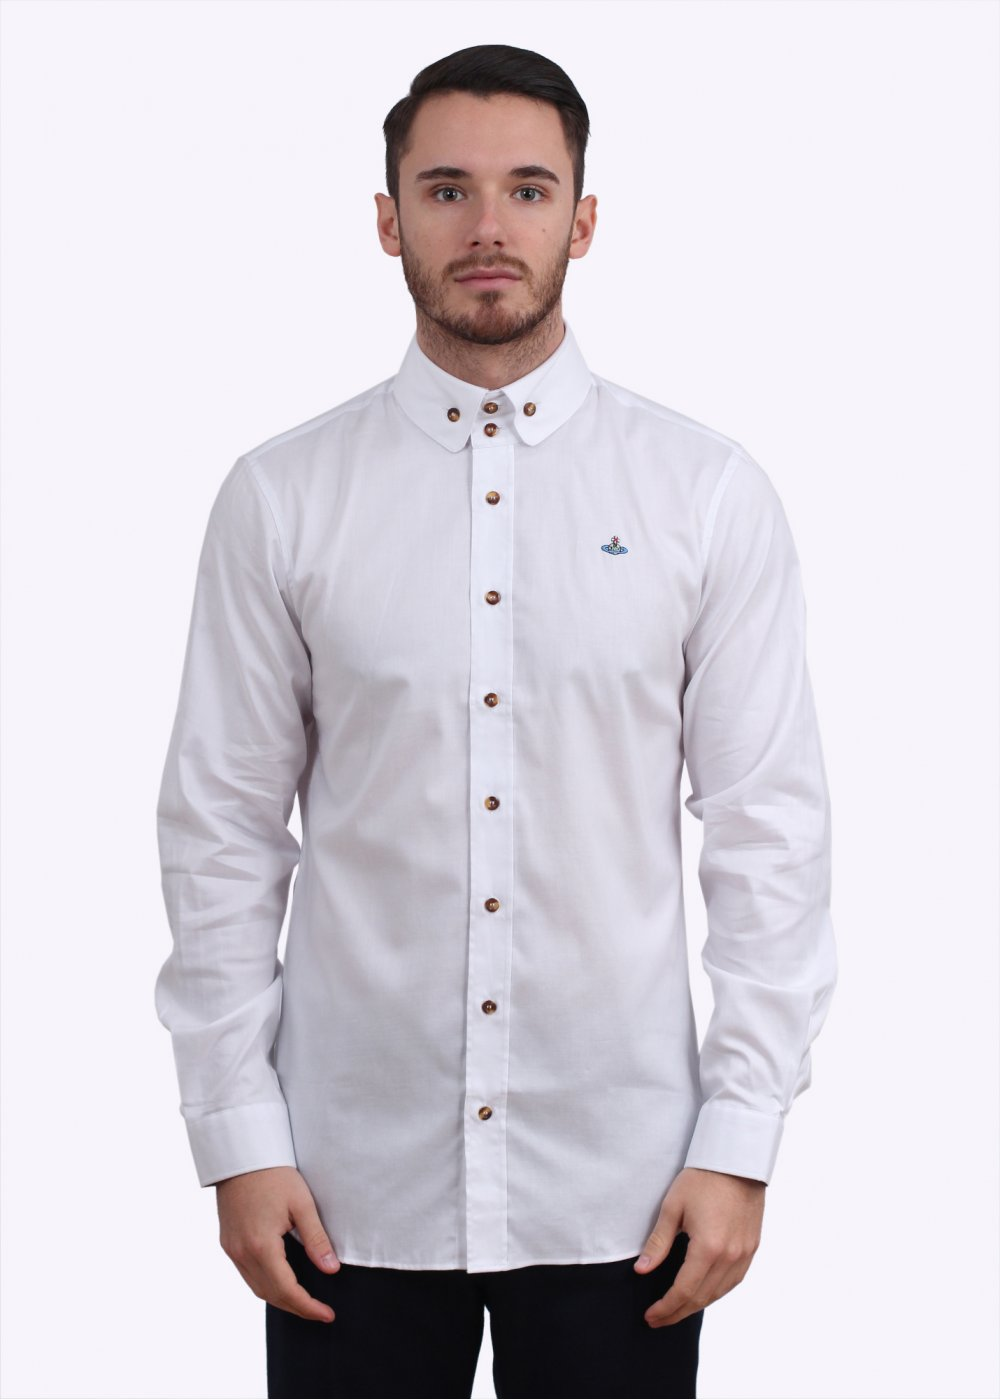 Vivienne westwood 2 button collar shirt white for White shirt with collar pin